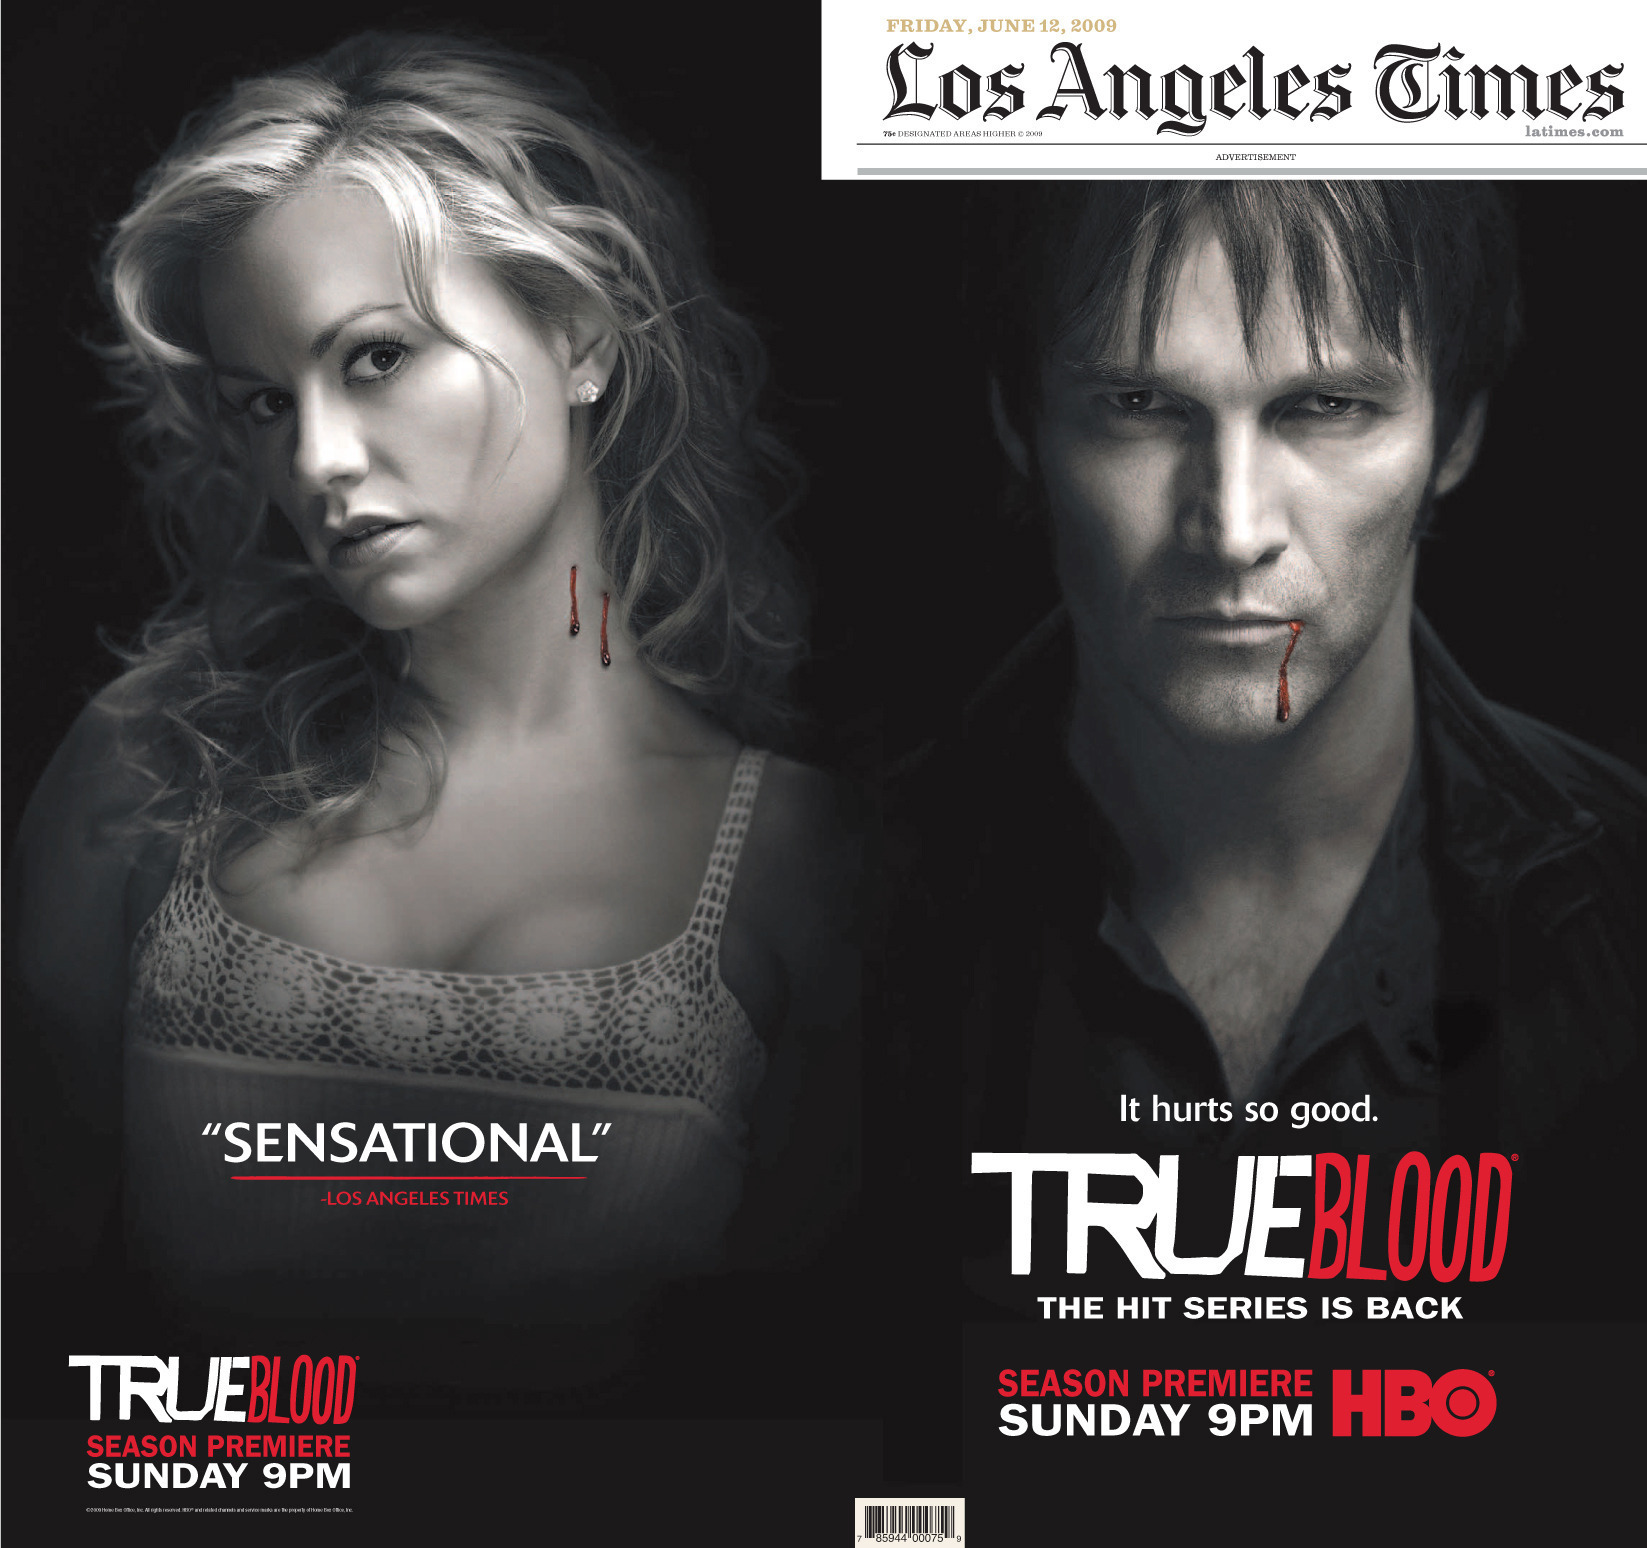 initial promotional mix of true blood